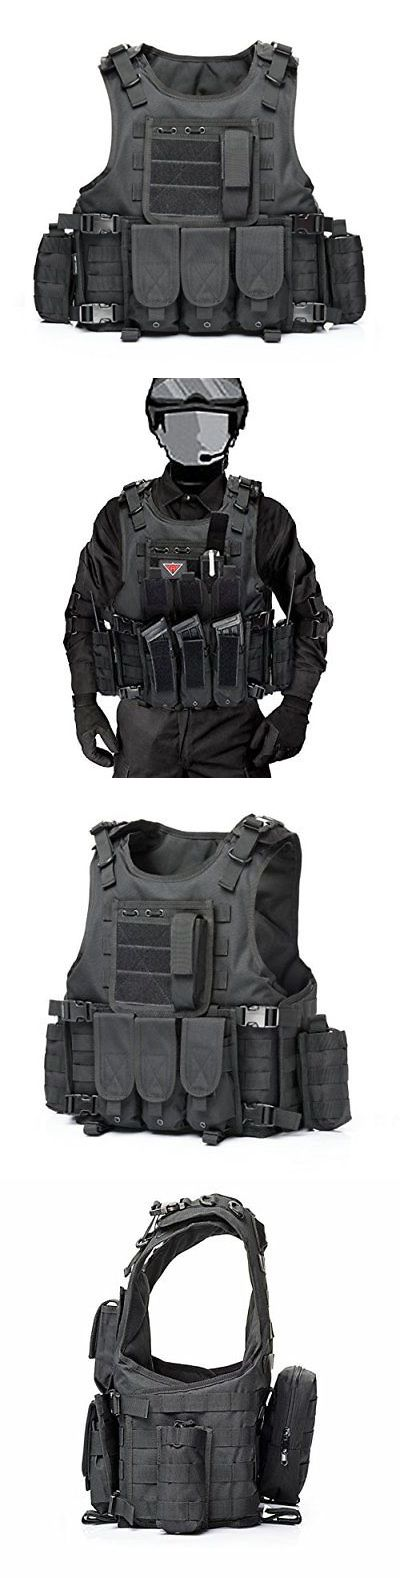 Vests 36284: Yakeda Airsoft Vests Tactical Vest Outdoor Field Play Army Fans Cs Game Expand -> BUY IT NOW ONLY: $66.25 on eBay!